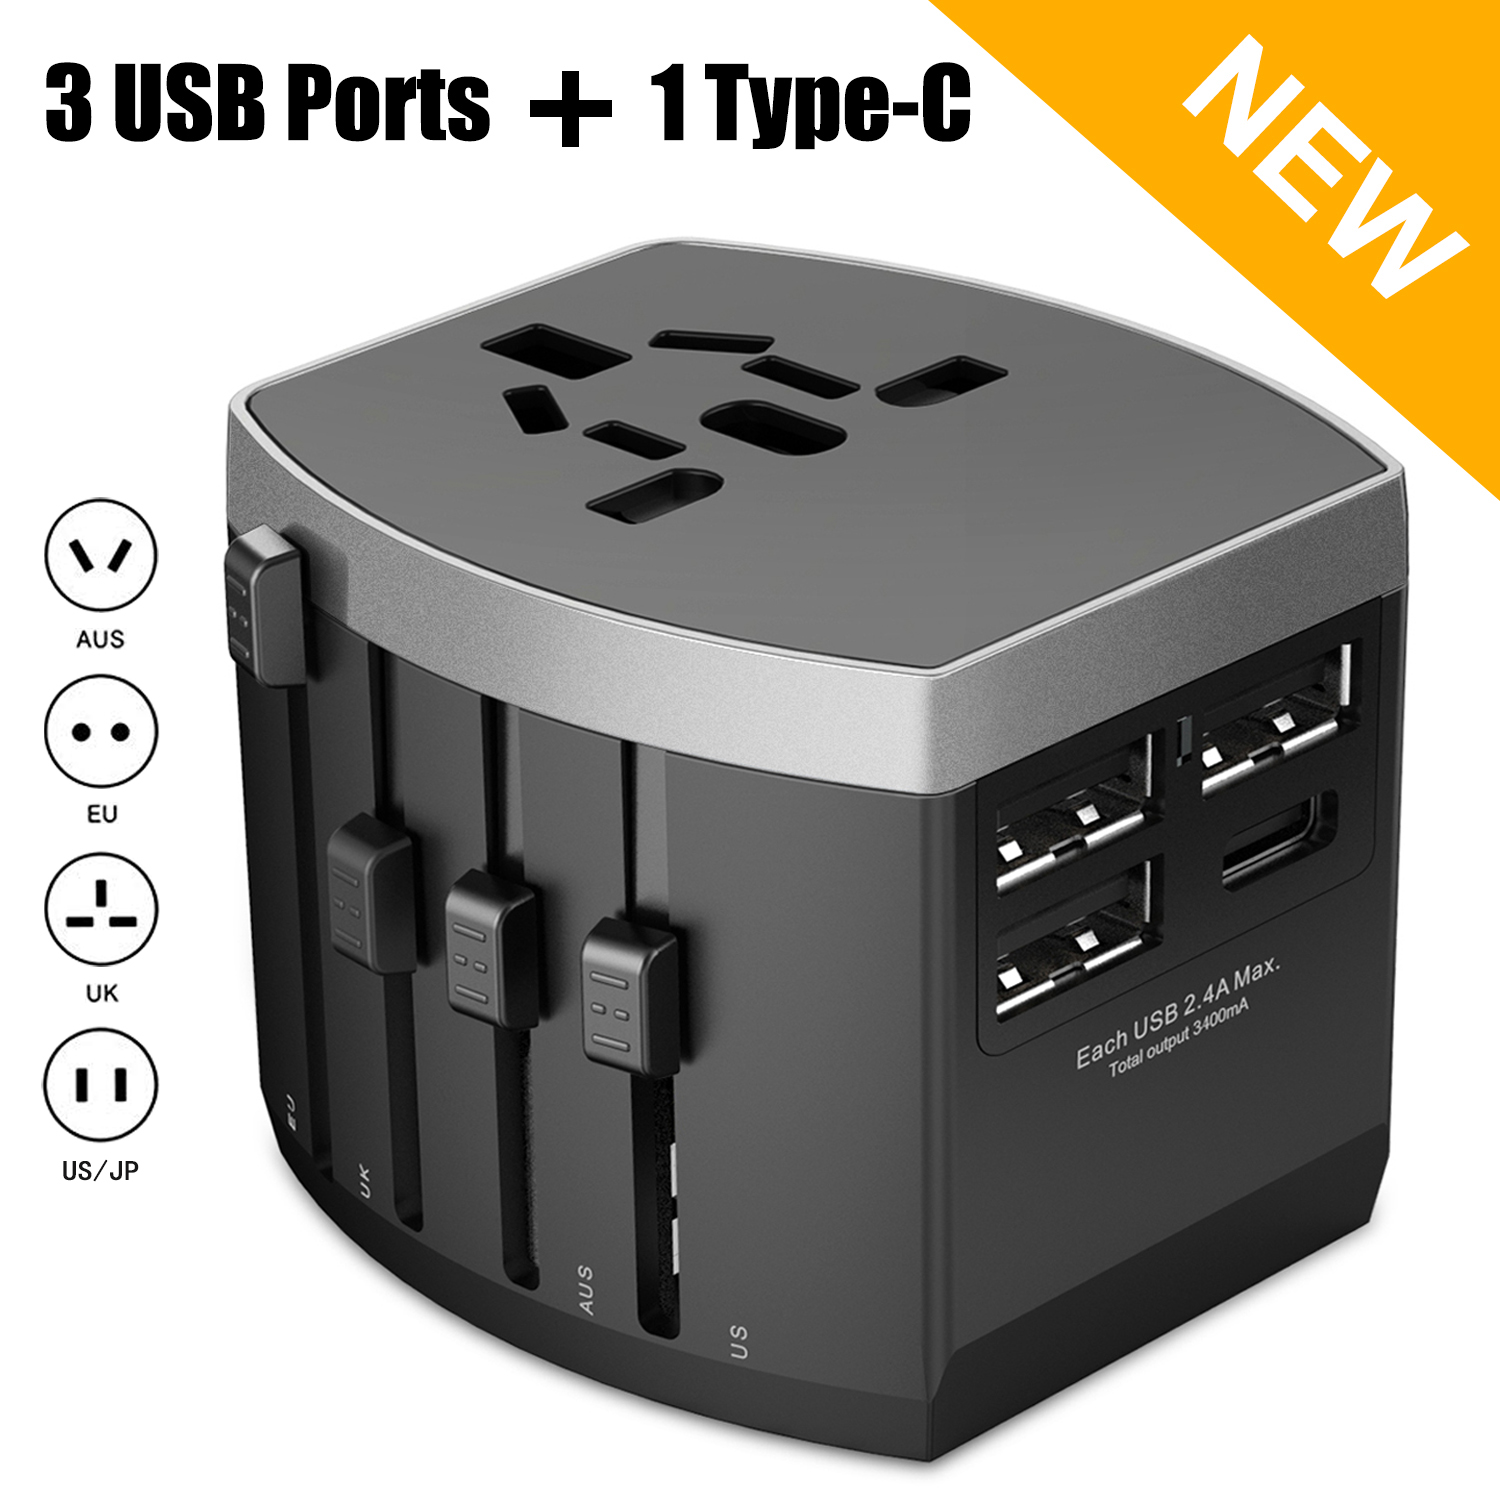 NERDI Travel Adapter, All-in-one Universal Power Adapter with 1 AC Outlet + 1 Type-C Port + 3 USB Ports, International Adapter for US / UK / Europe / AUS Over 150 Countries Worldwide